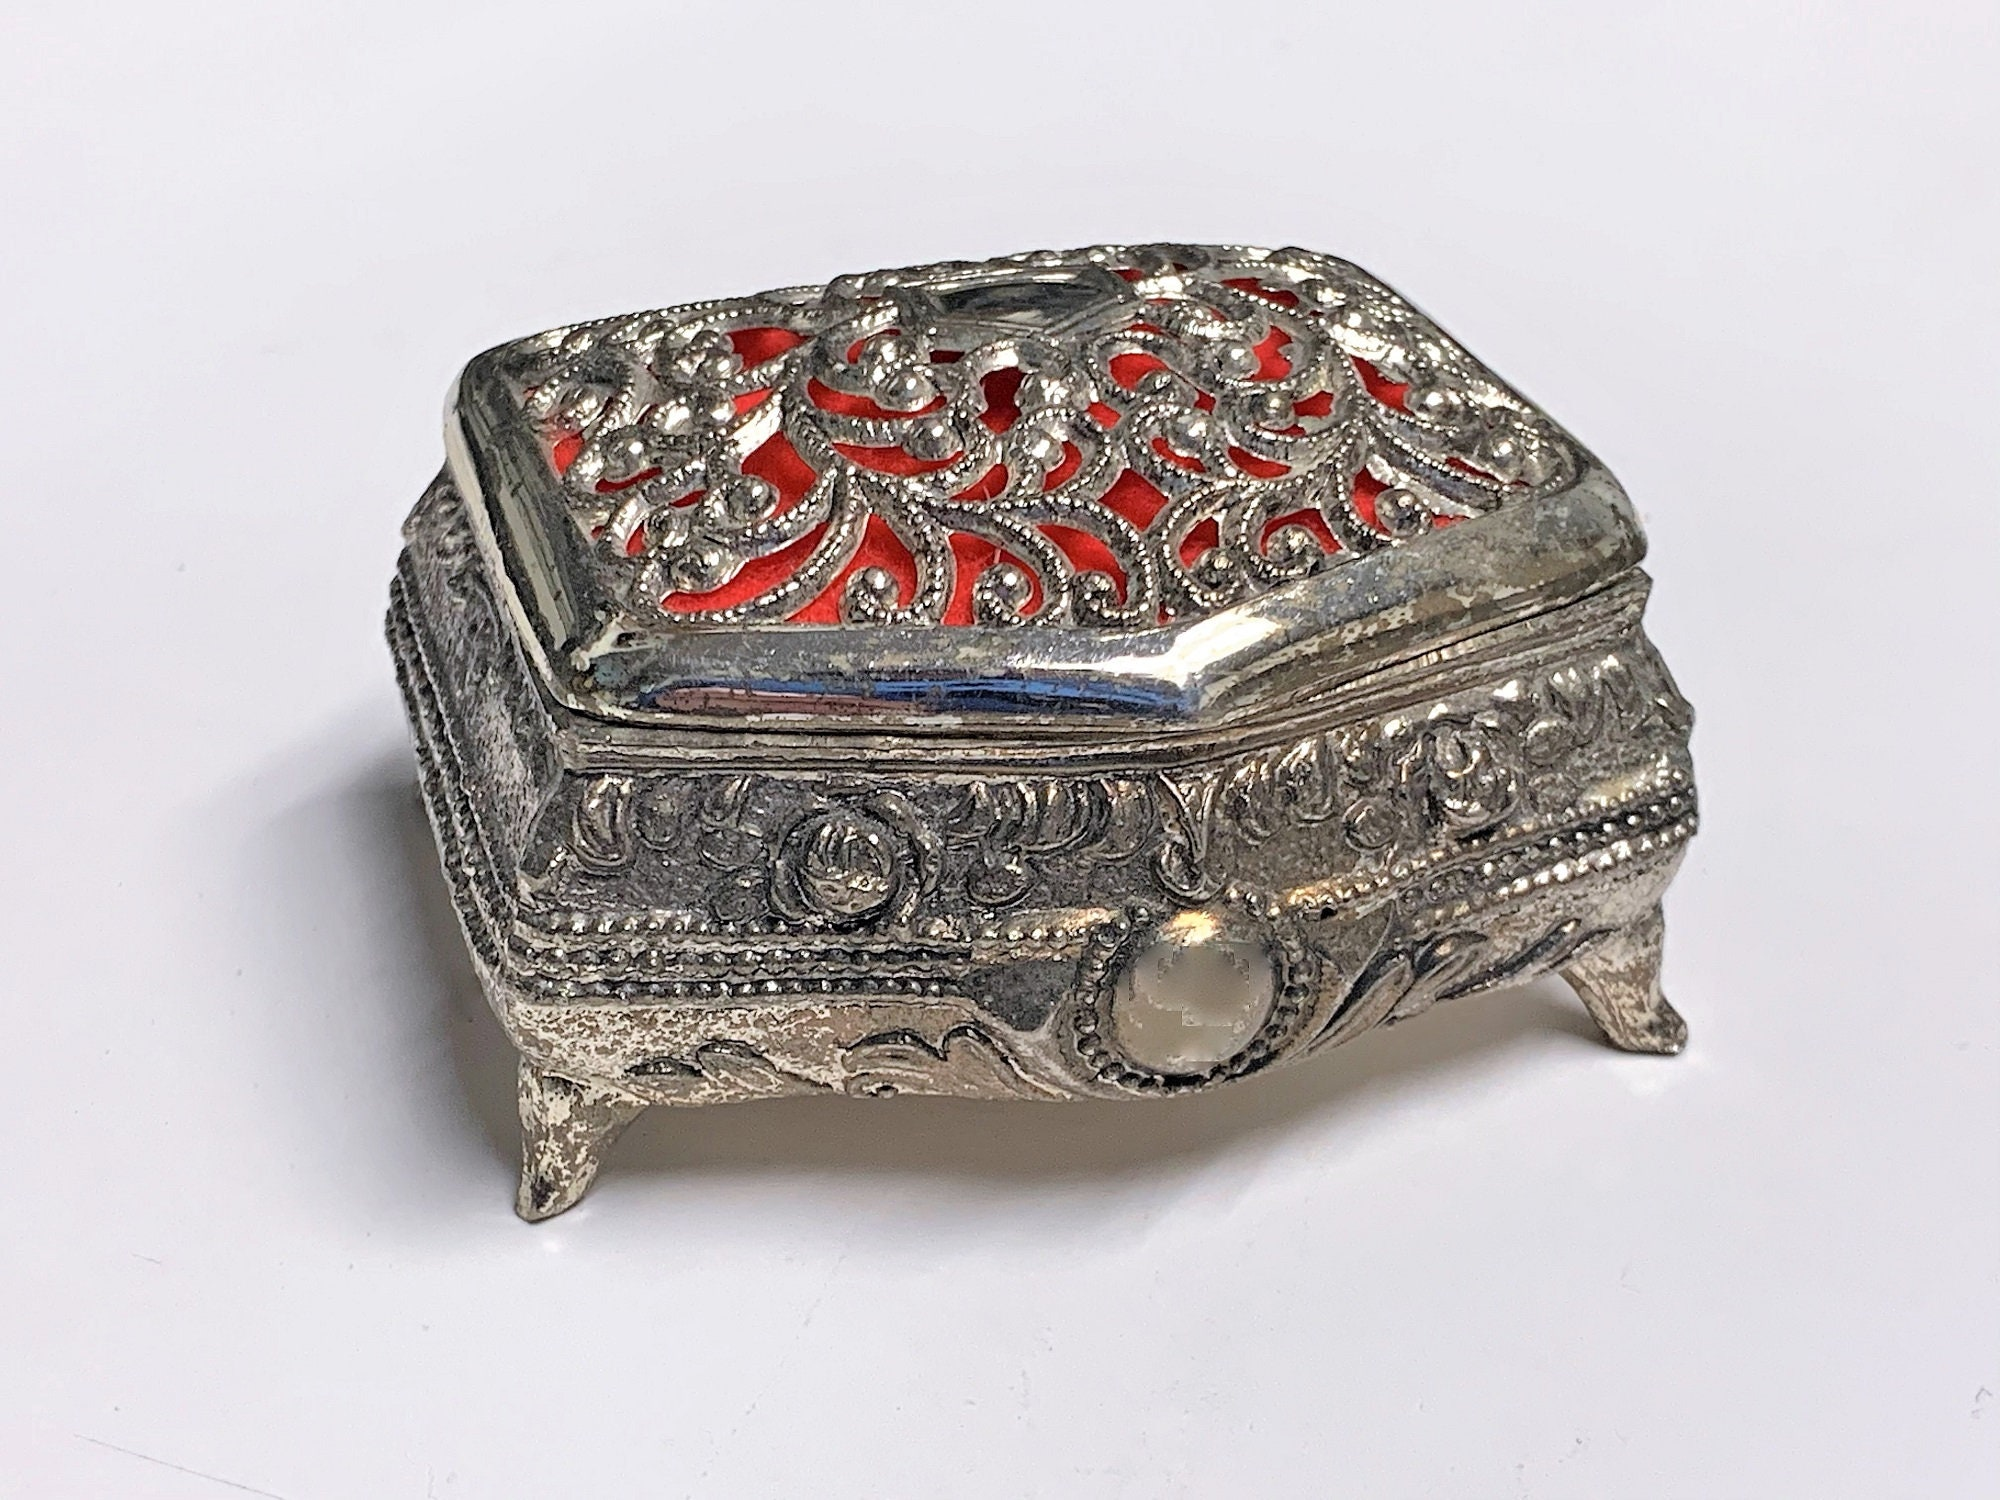 Filigree Top Free US Shipping. Red Velvet Raised Patterns 2 L Antique Silver Clad Small Treasure Box 4 Feet 2.75 W Japan 1950/'s